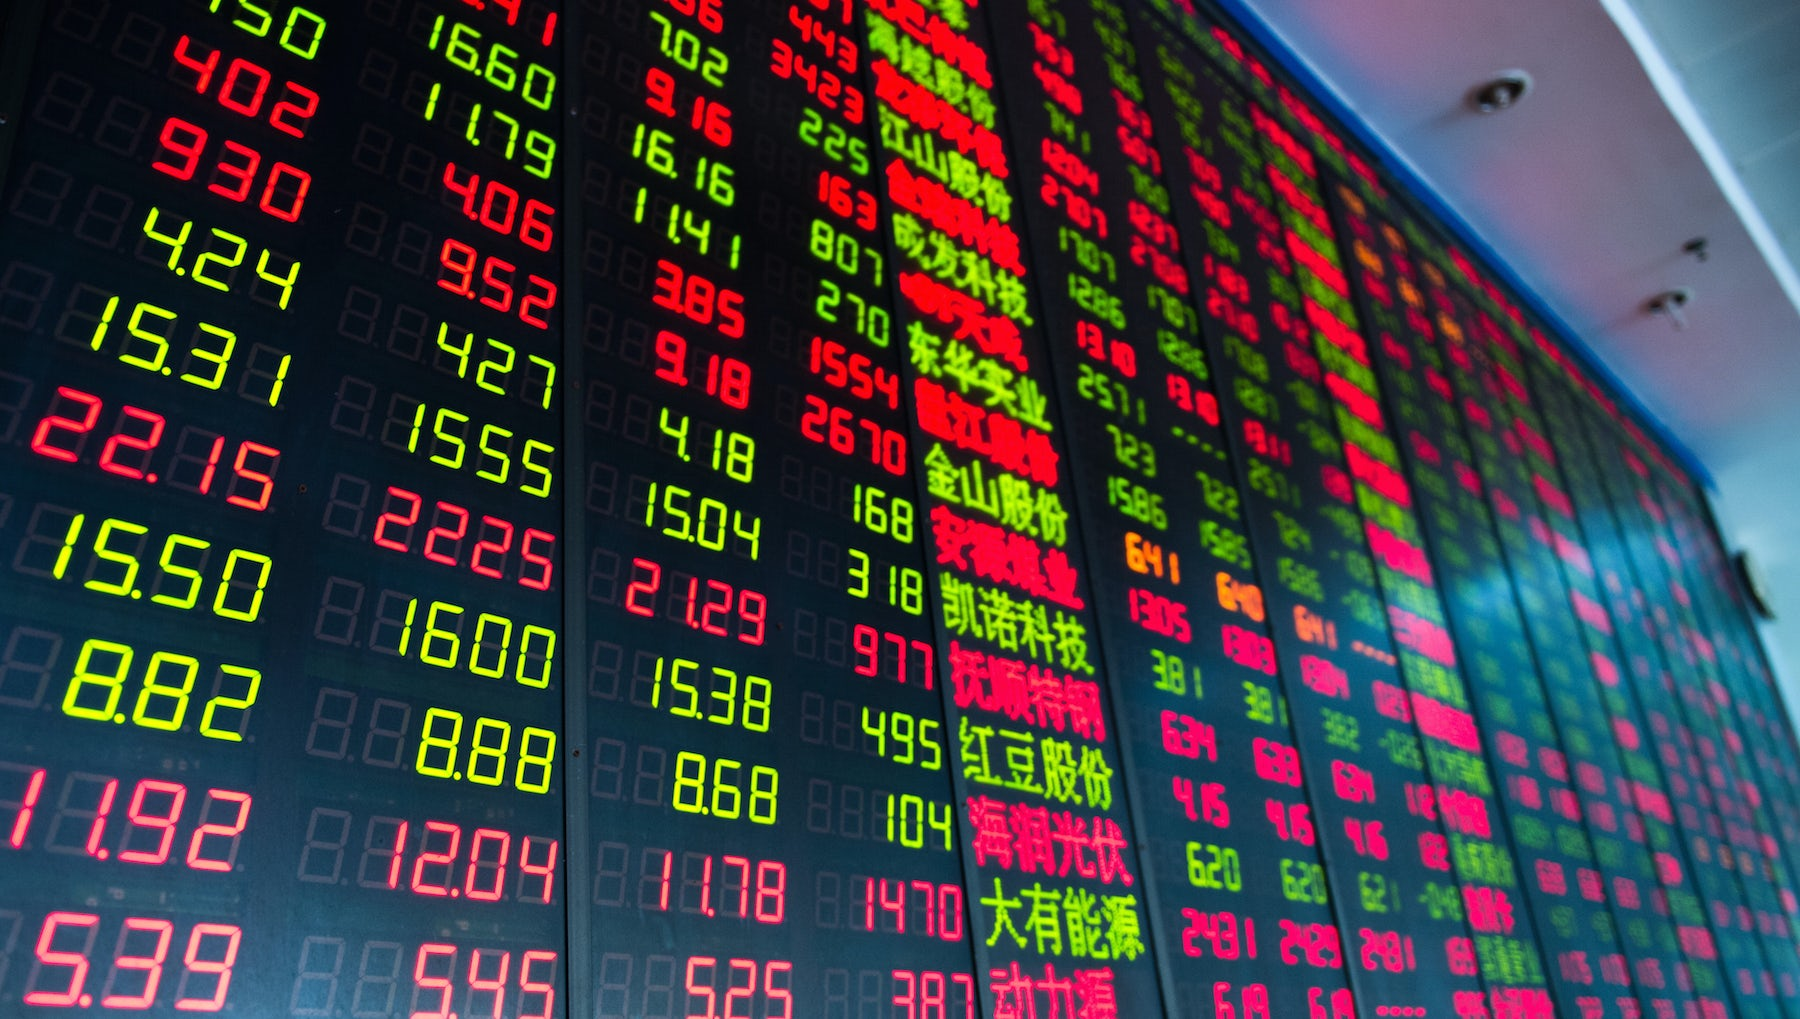 Stock market charts in China | Source: Shutterstock